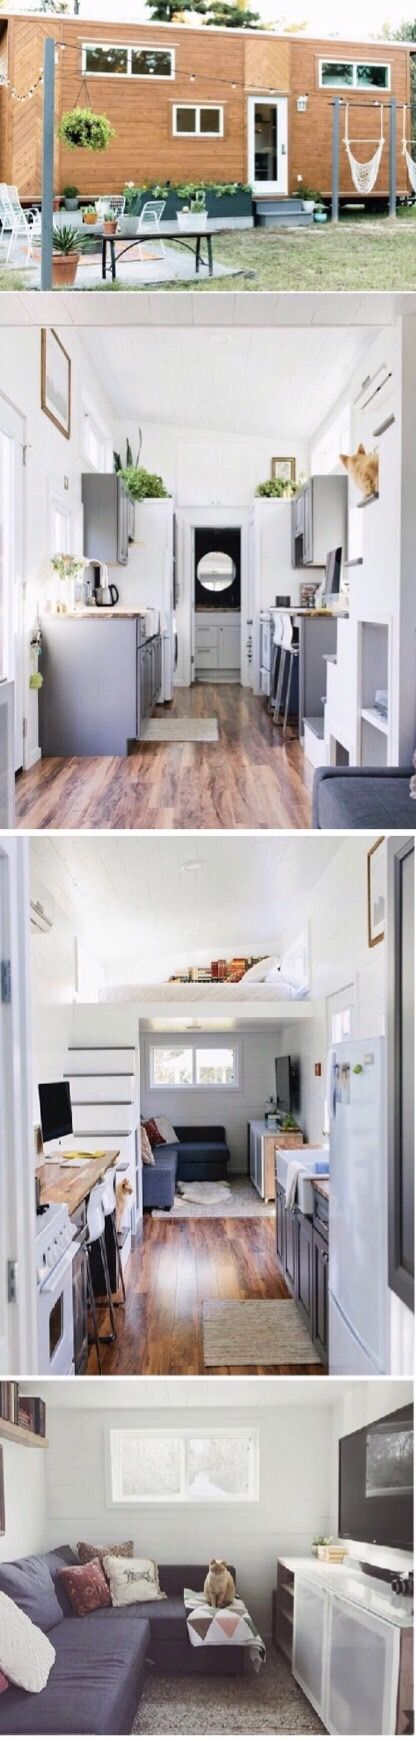 Interior reference | tiny house